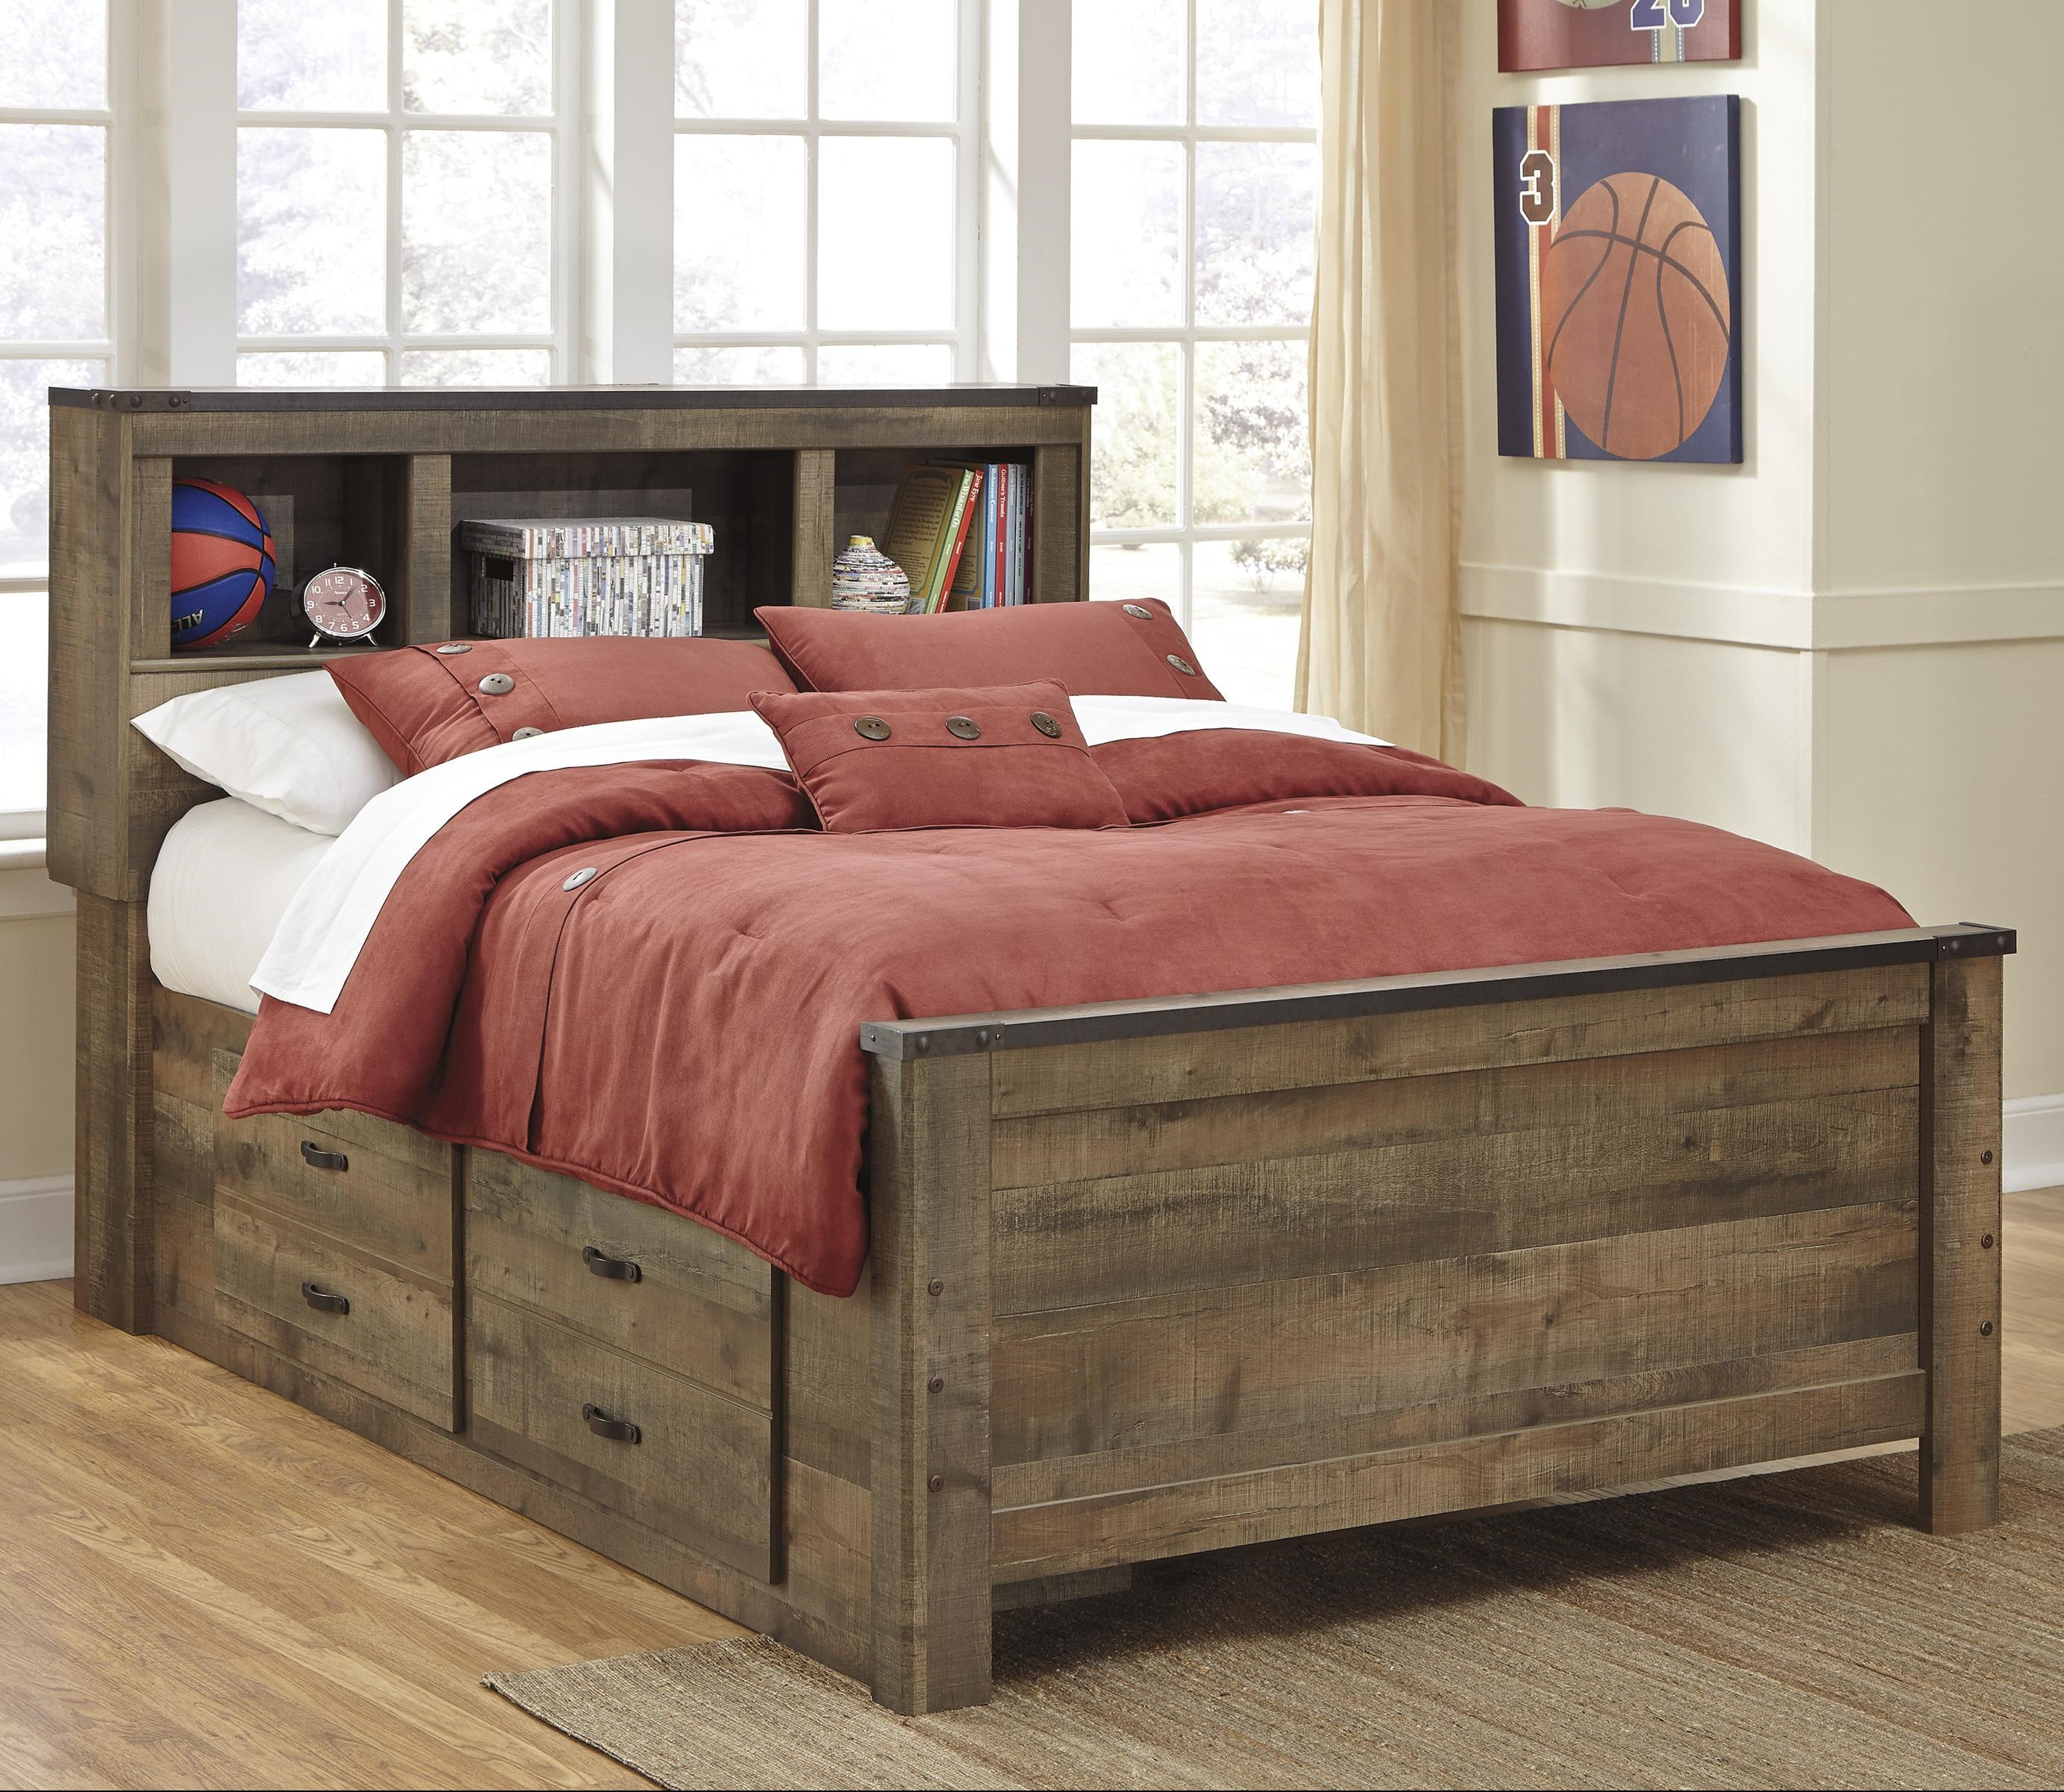 Bookcase Bed Trinell Rustic Look Full Bookcase Bed With Under Bed Storage By Signature Design By Ashley At Sparks Homestore Home Furnishings Direct